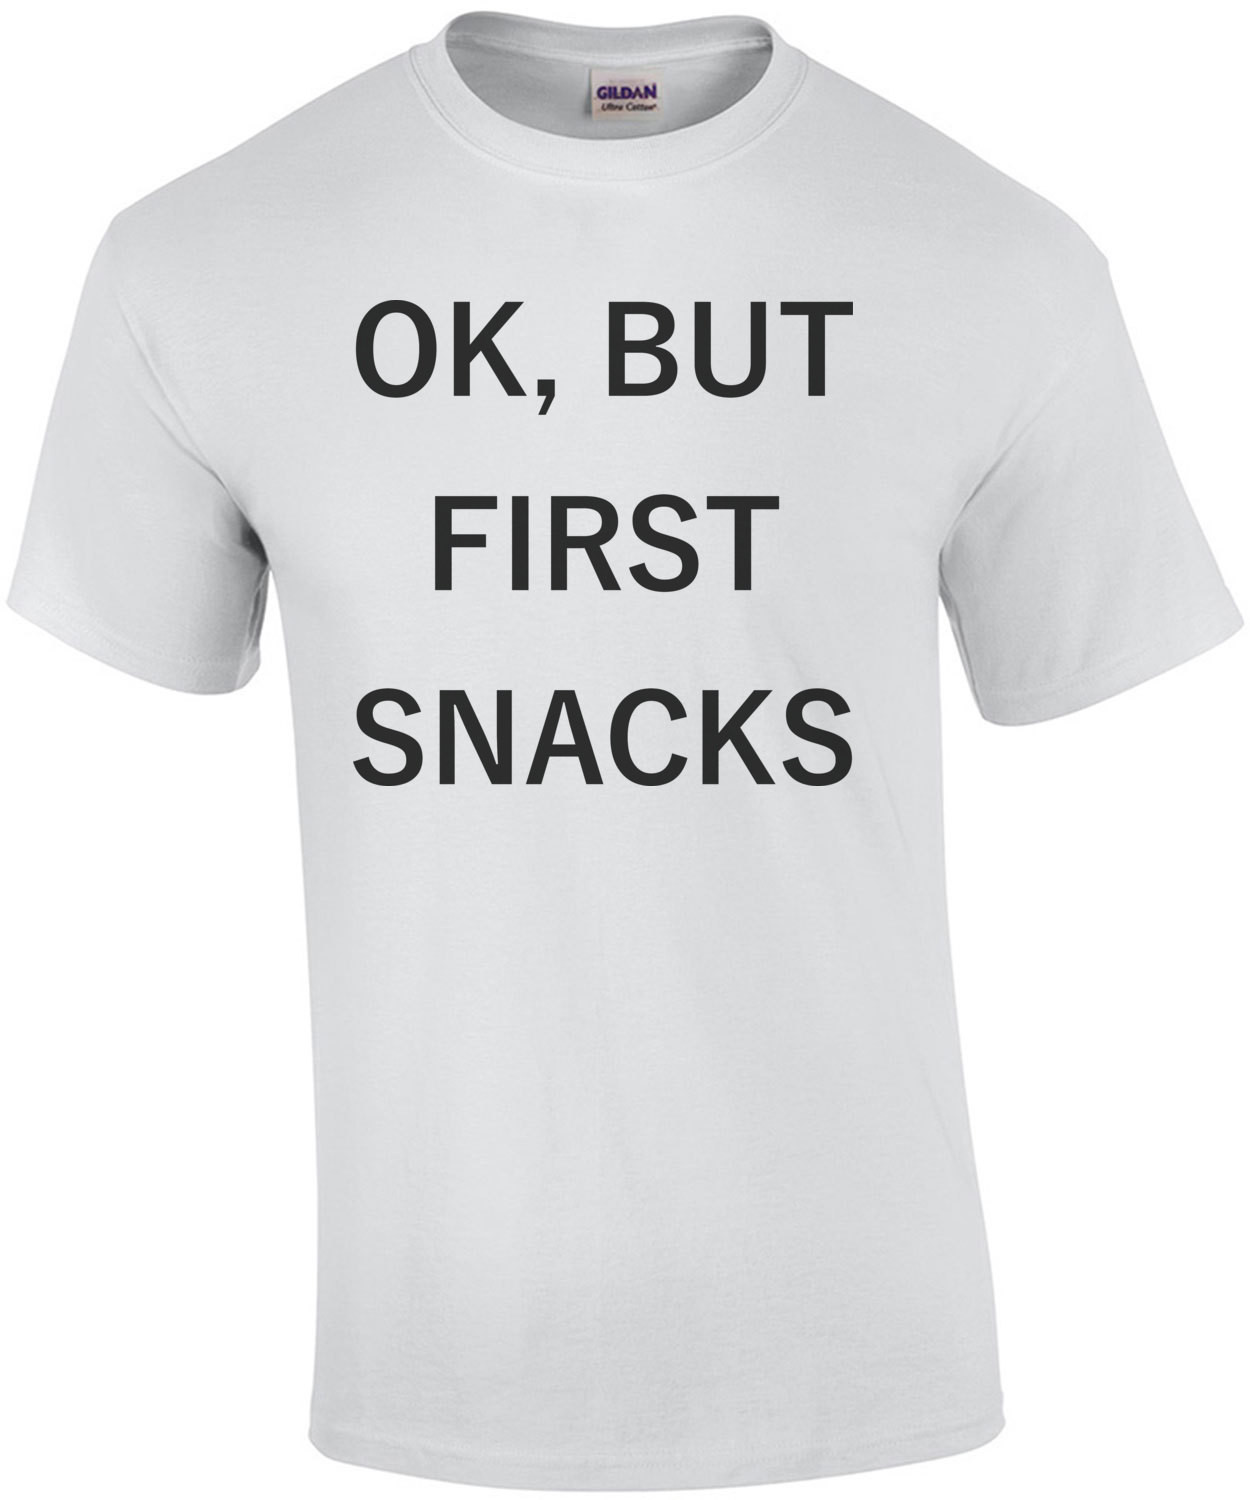 OK, BUT FIRST SNACKS - Funny food t-shirt